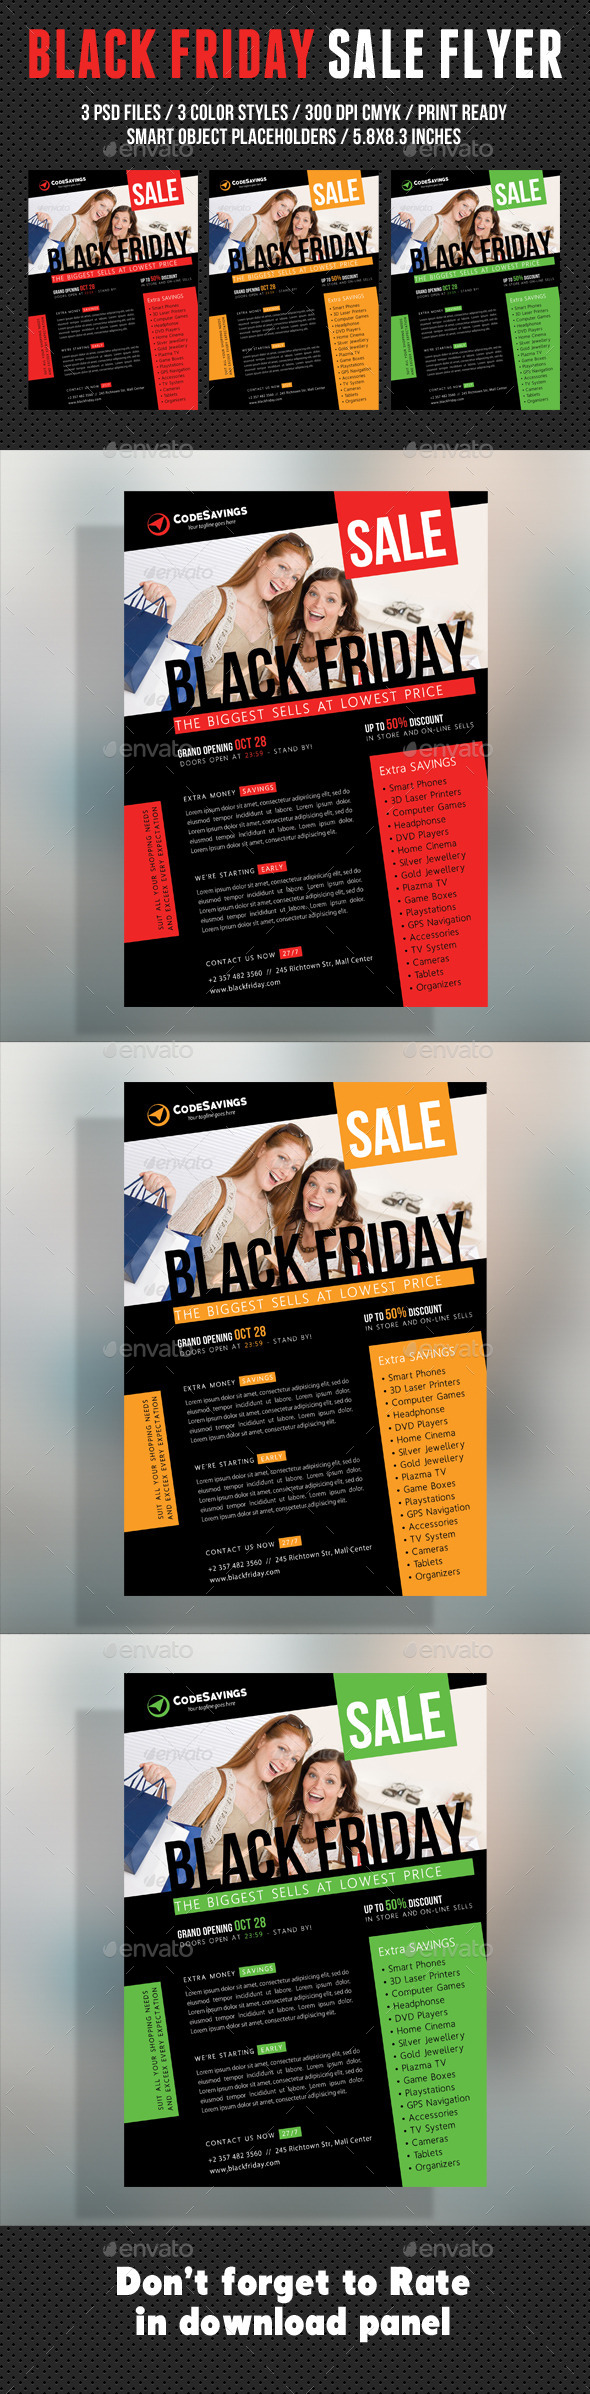 Black Friday Flyer V03 - Commerce Flyers